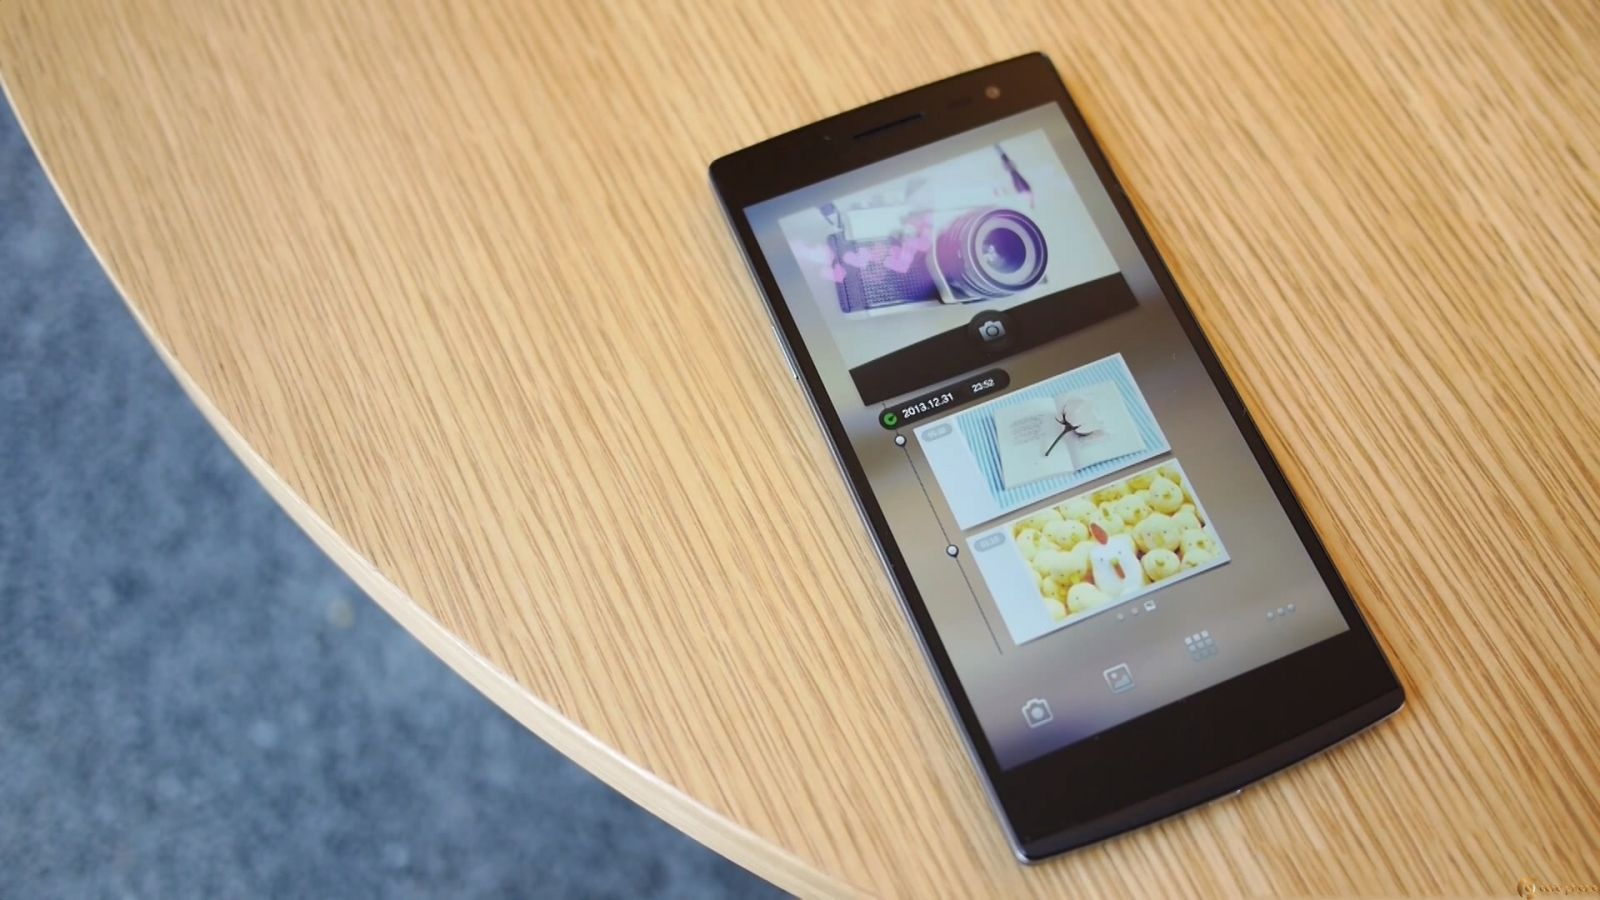 thay pin oppo find 7 7a hinh anh 1